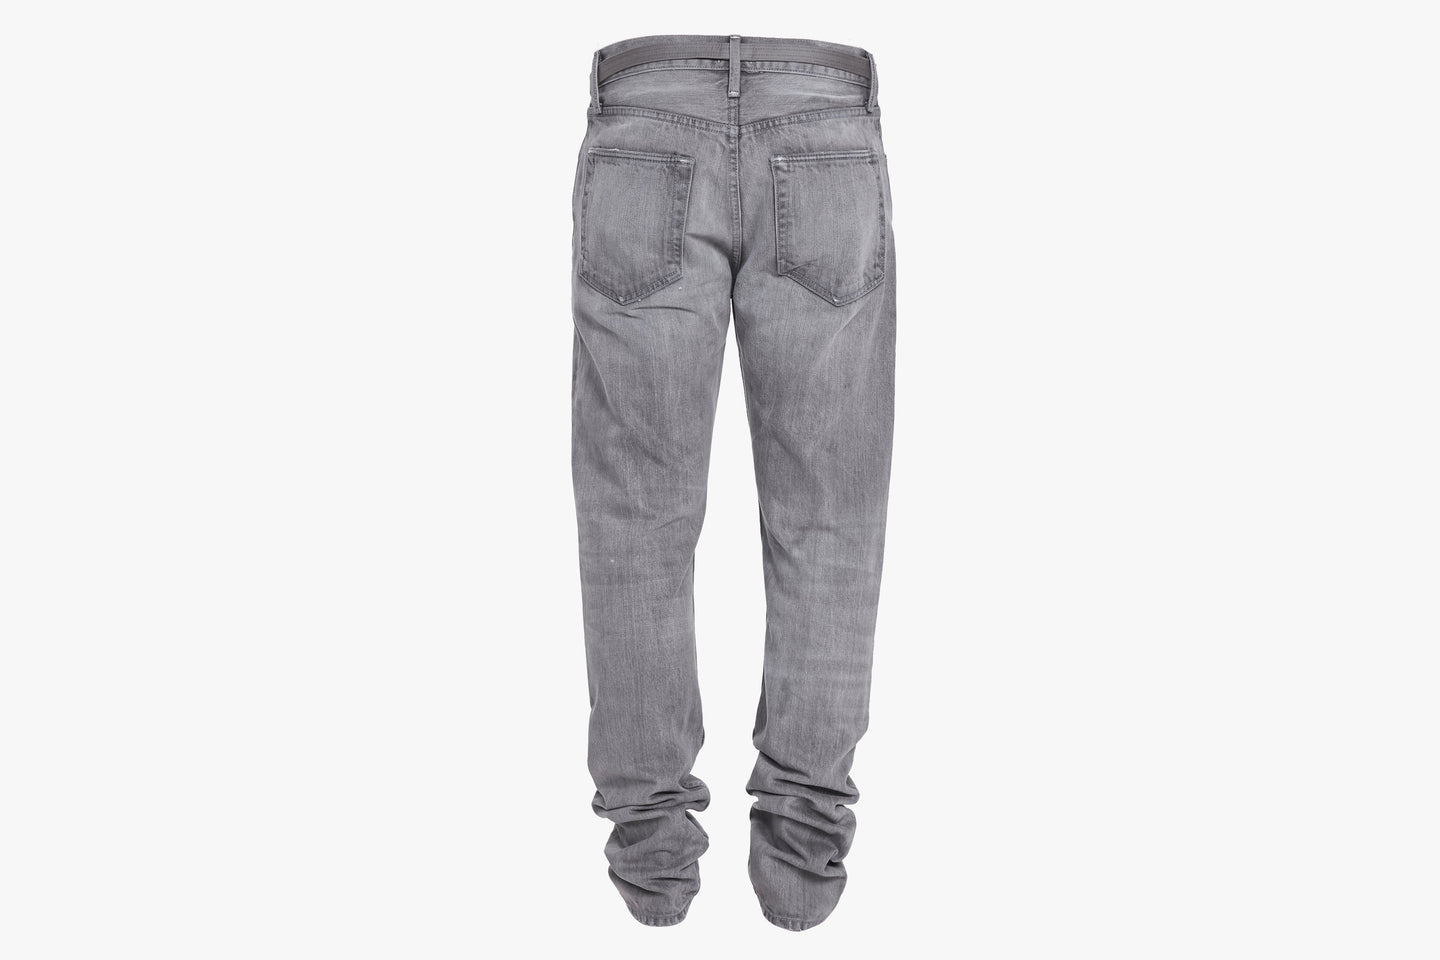 Relaxed Denim Jean - Relaxed Denim Jean